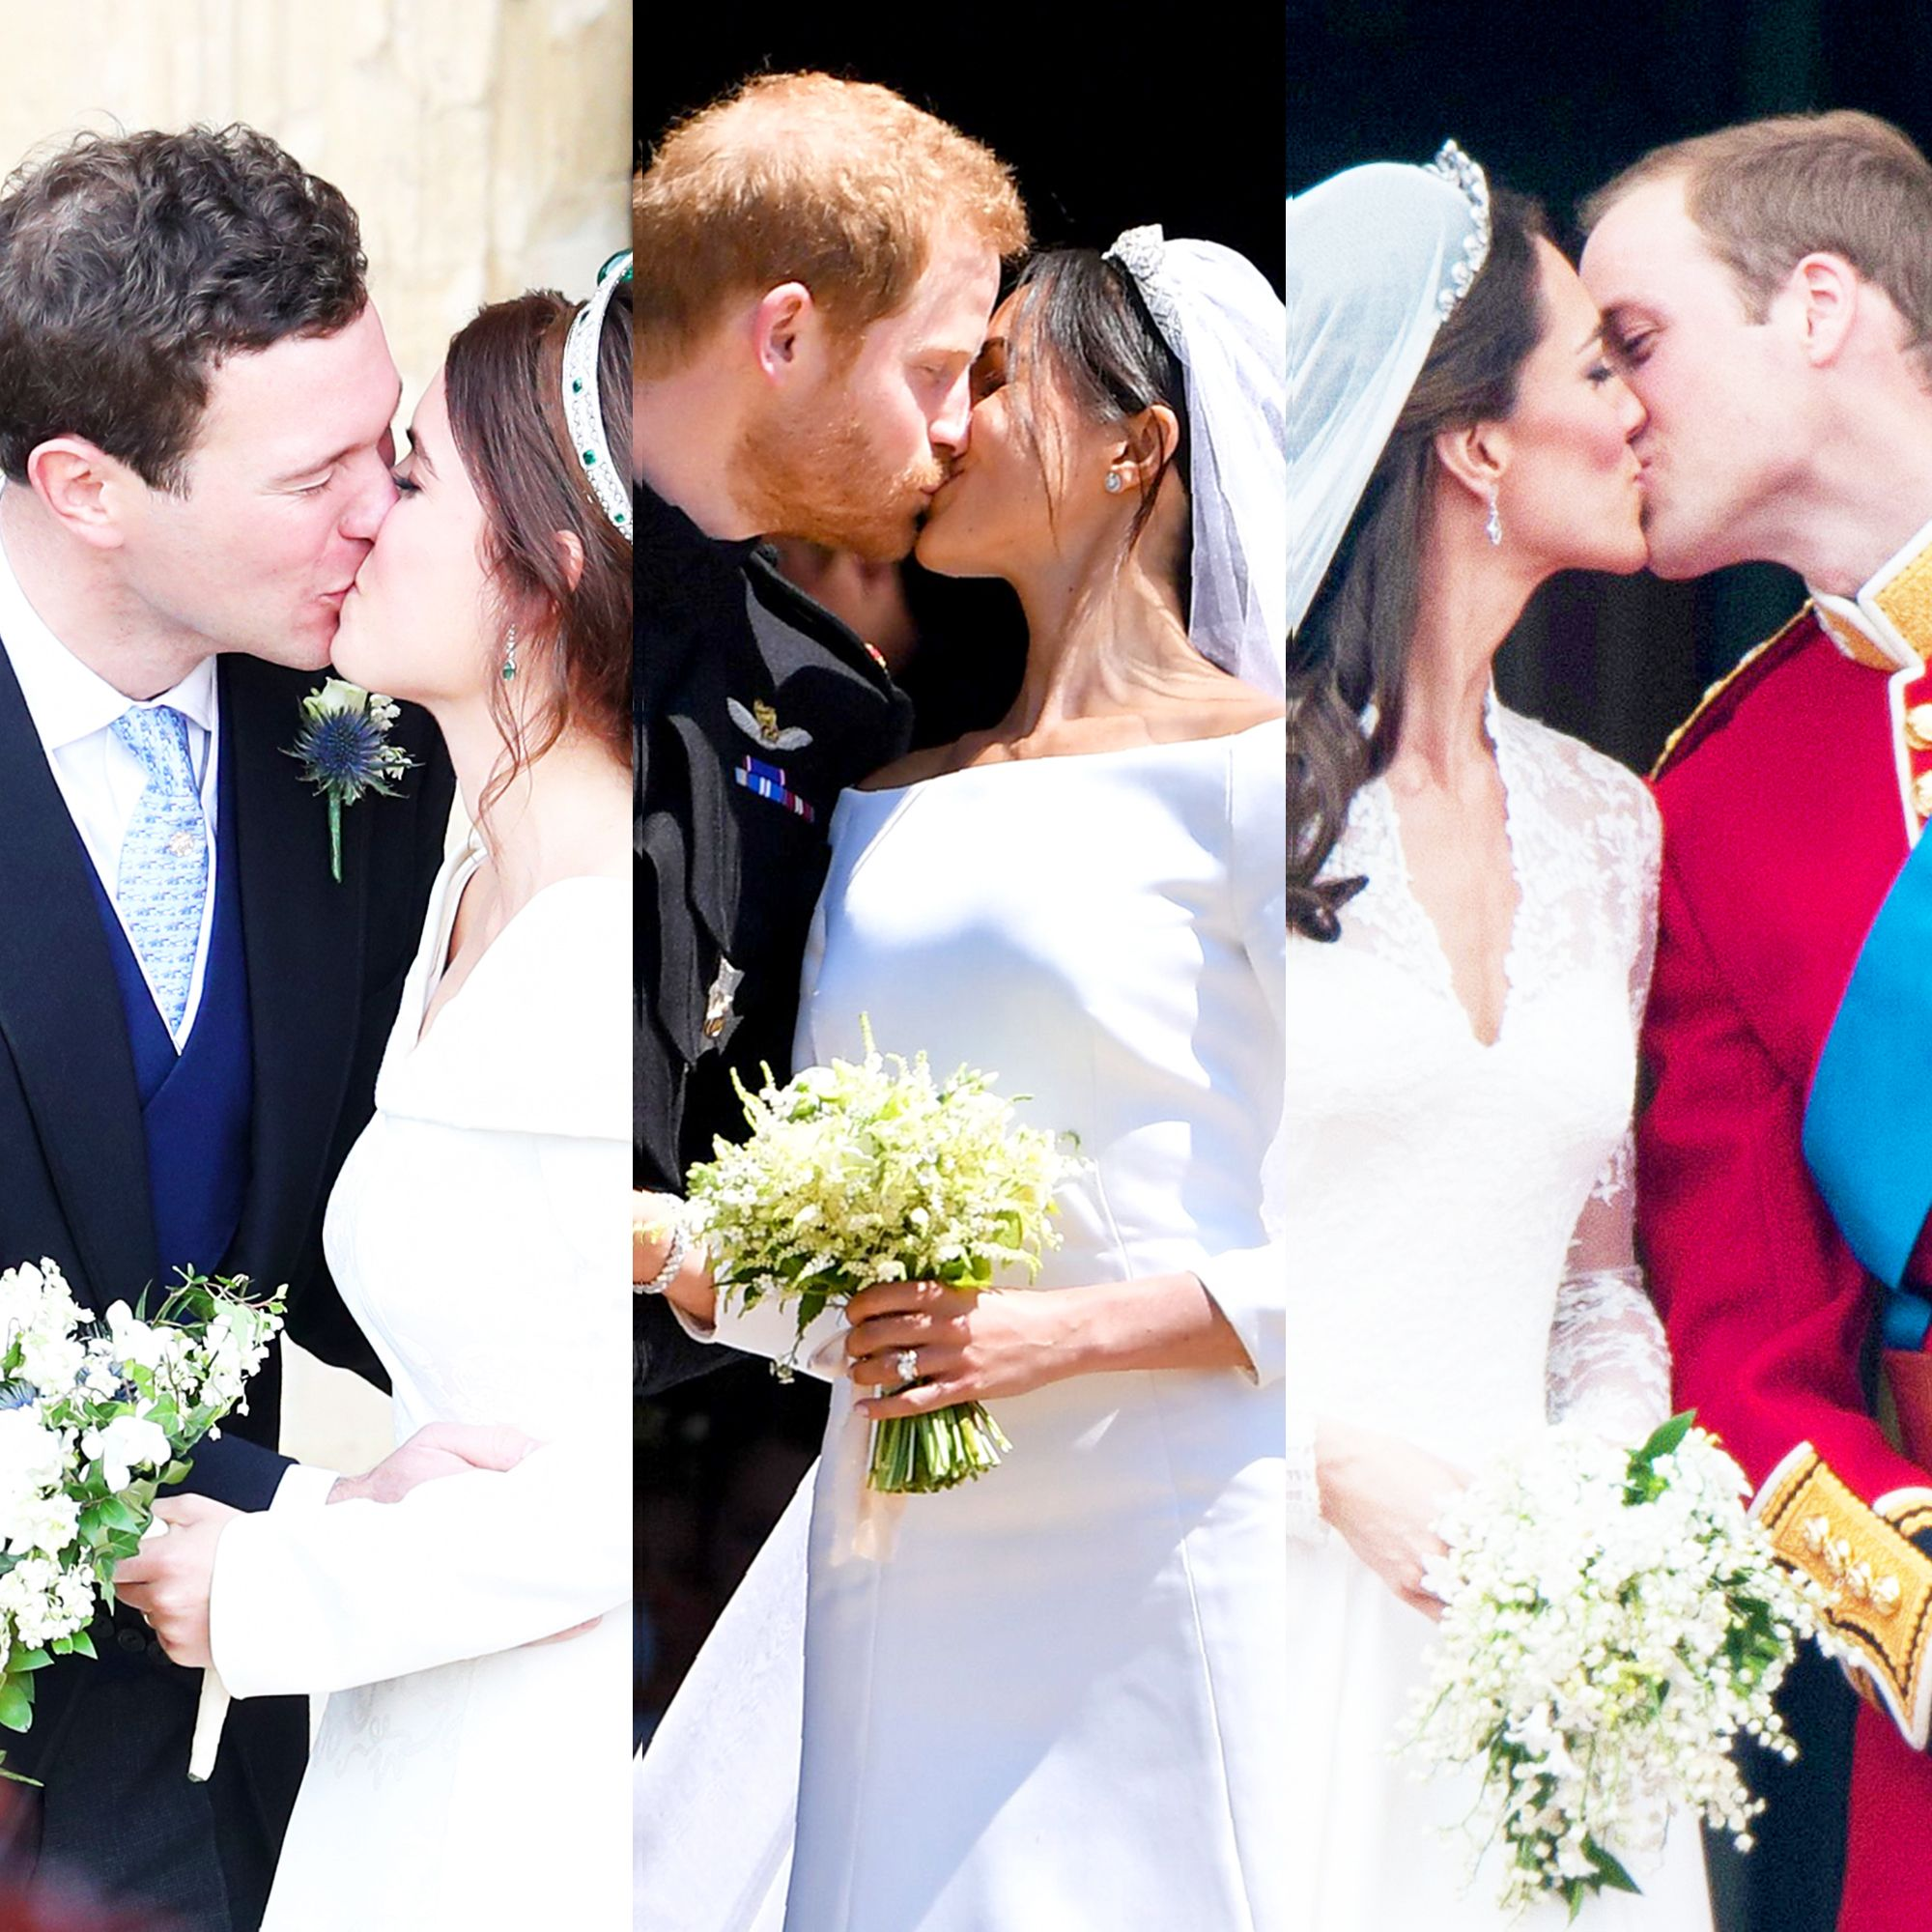 The Glaring Difference Between Princess Eugenie, Meghan Markle, and Kate Middletons Wedding Kisses